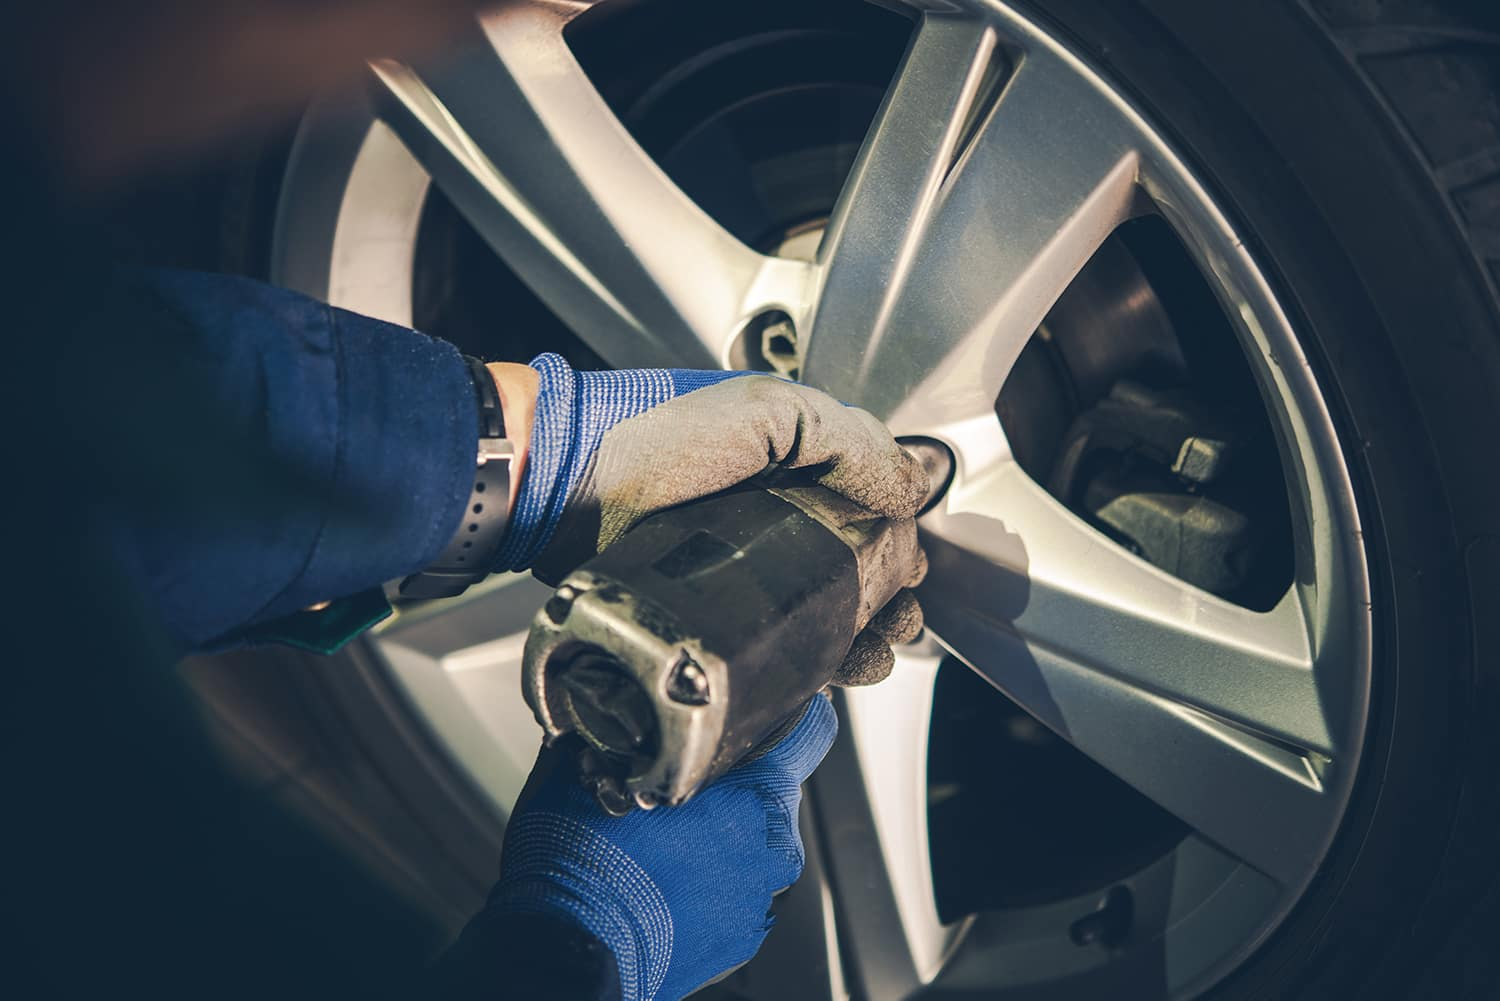 Jim Coleman Automotive is a Luxury Auto Group in Bethesda near Washington DC | Tightening up the wheel after allignment